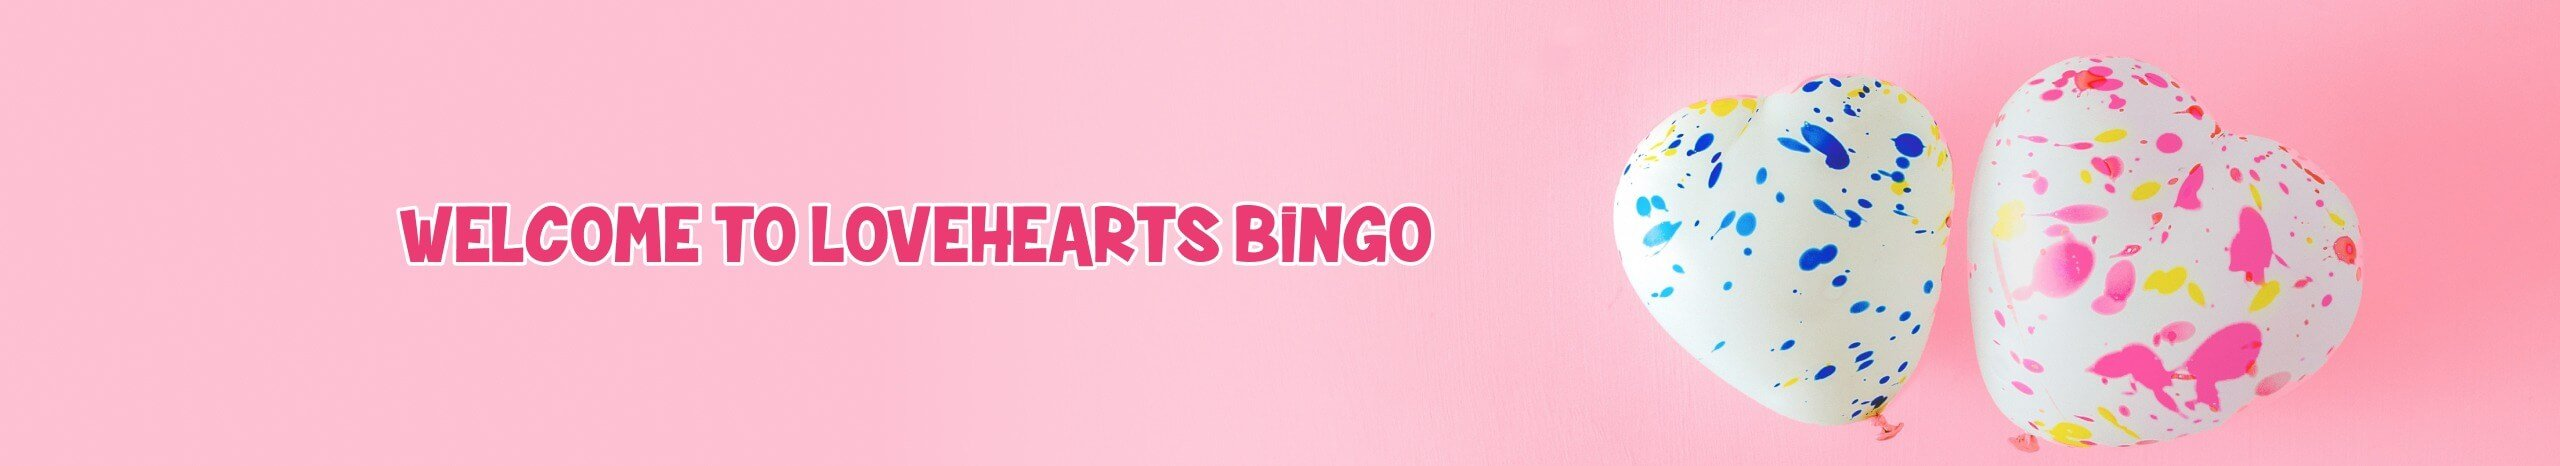 TOur Welcome Offer at Lovehearts Bingo, we'll top up your first deposit of at least £10 with 1,009 bingo tickets AND 10 No Wagering Spins.